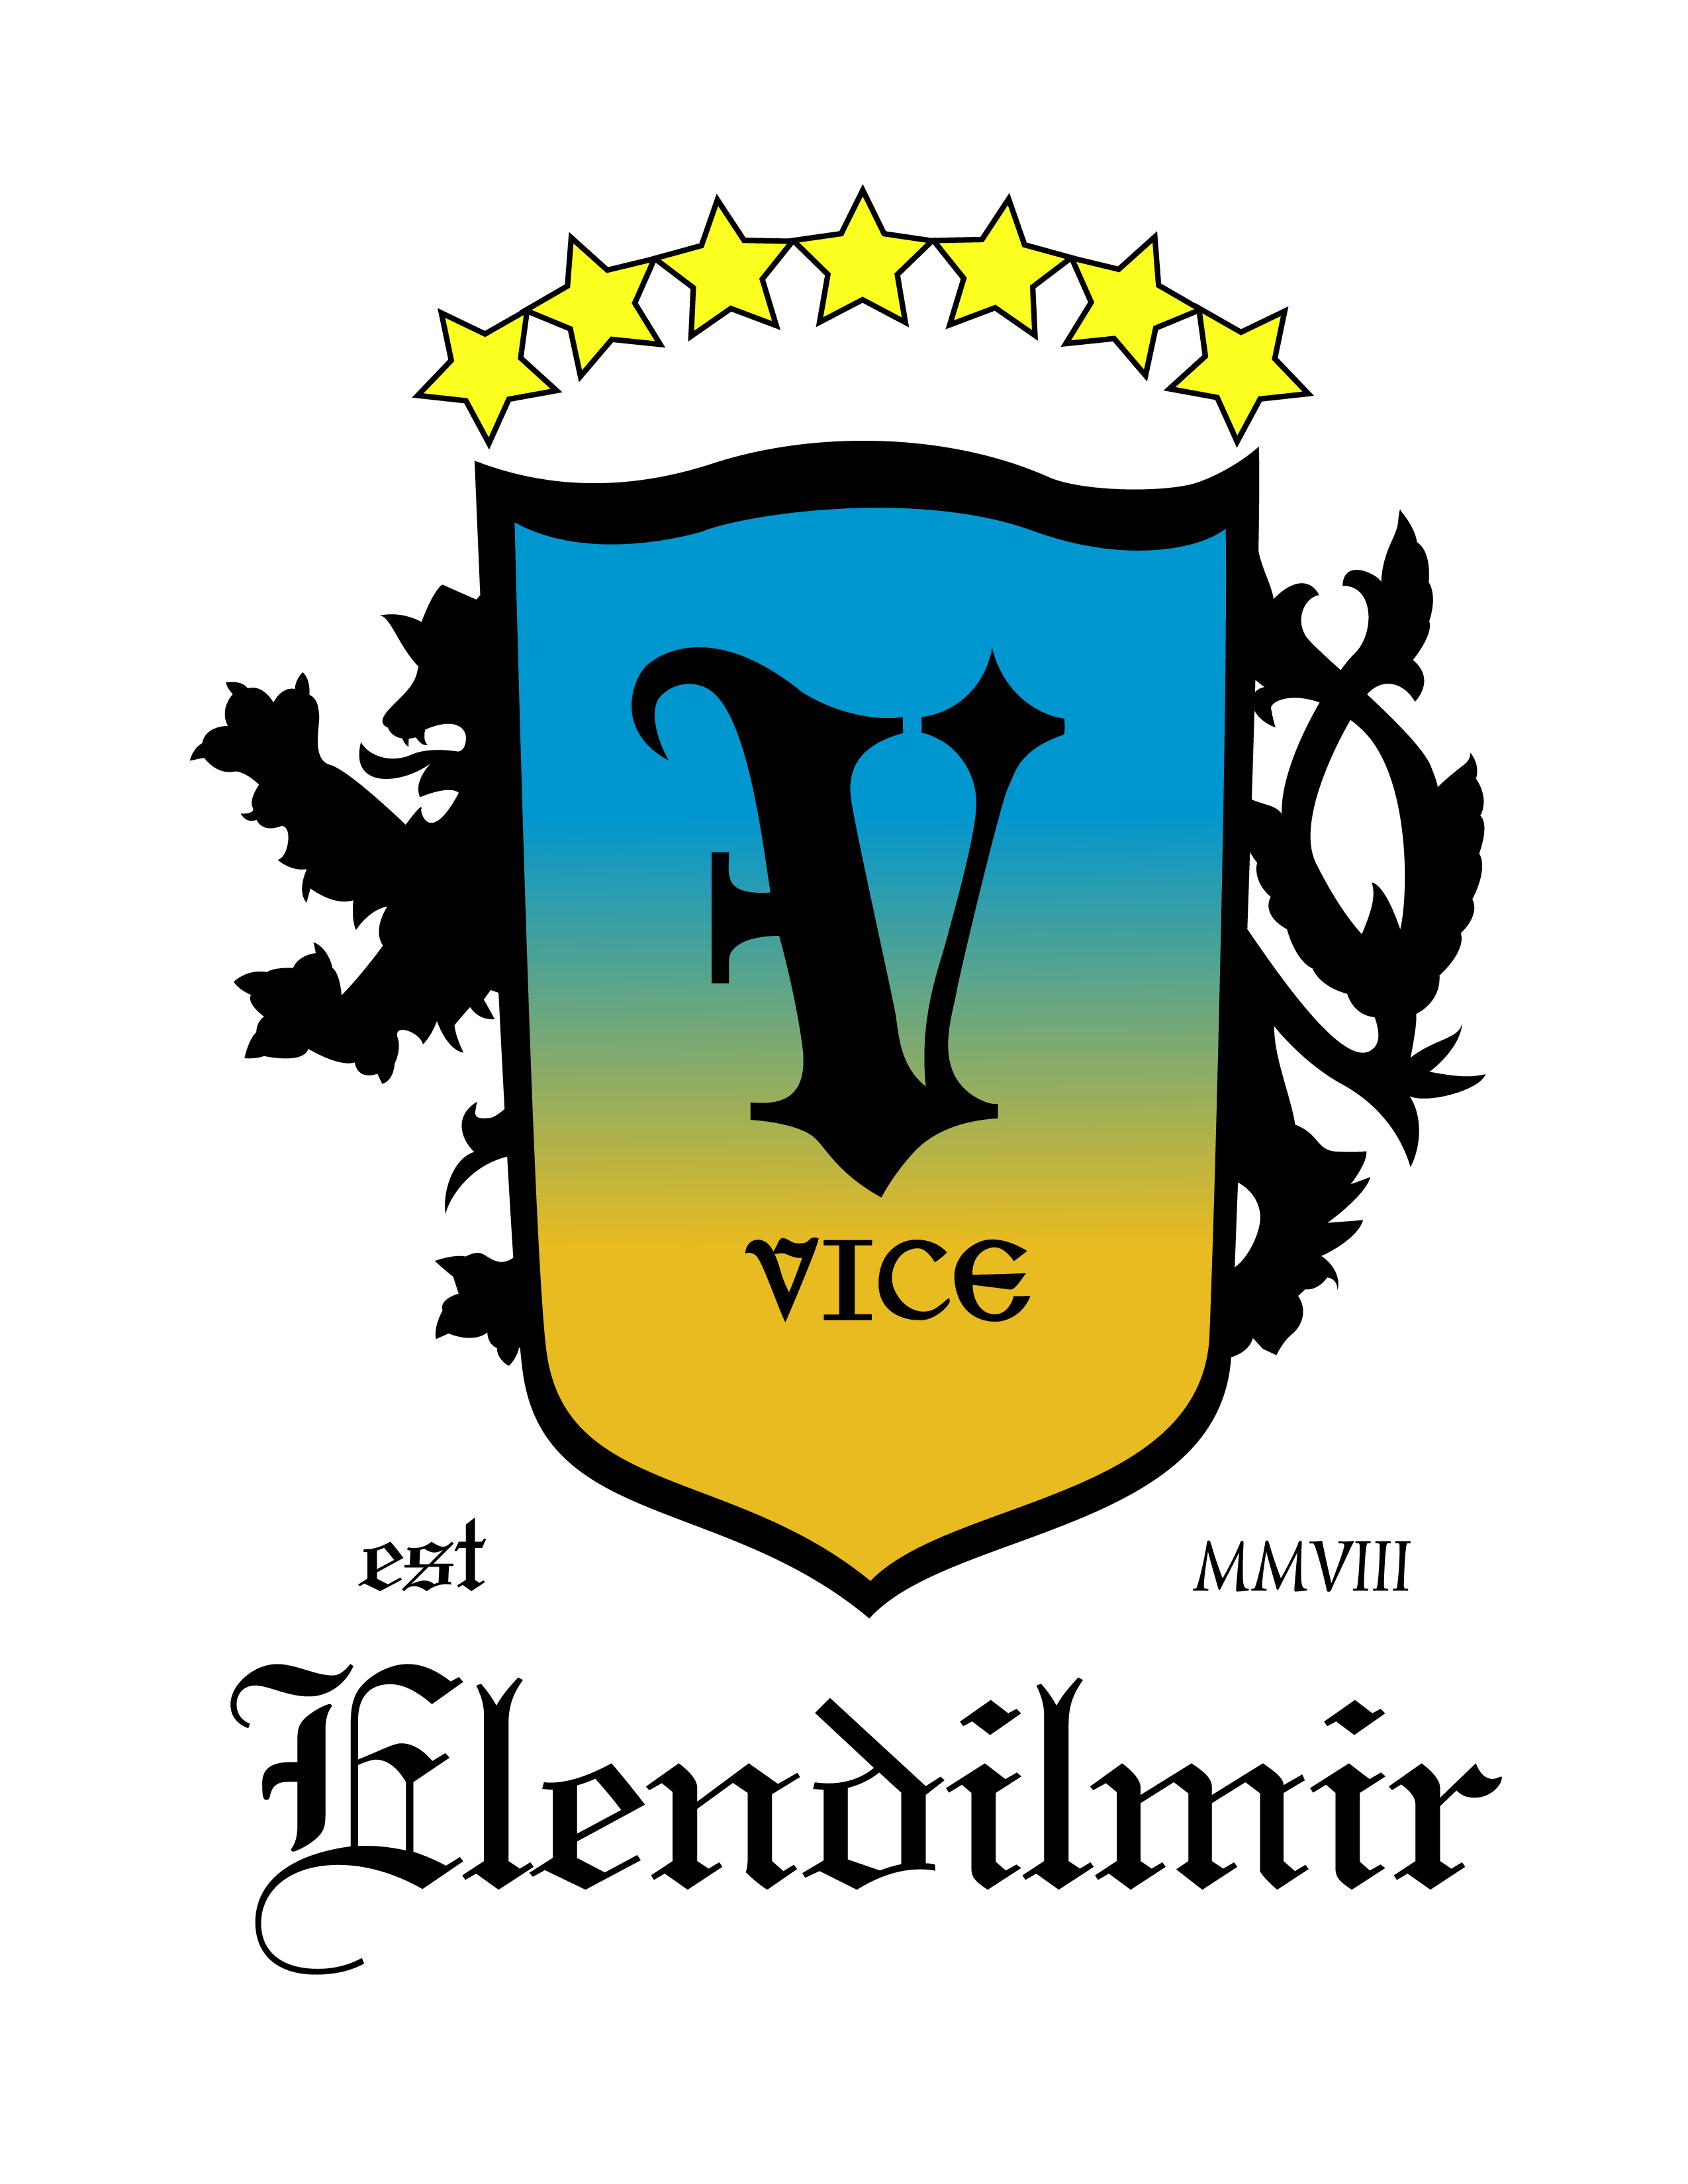 Image:Vice_logo.png